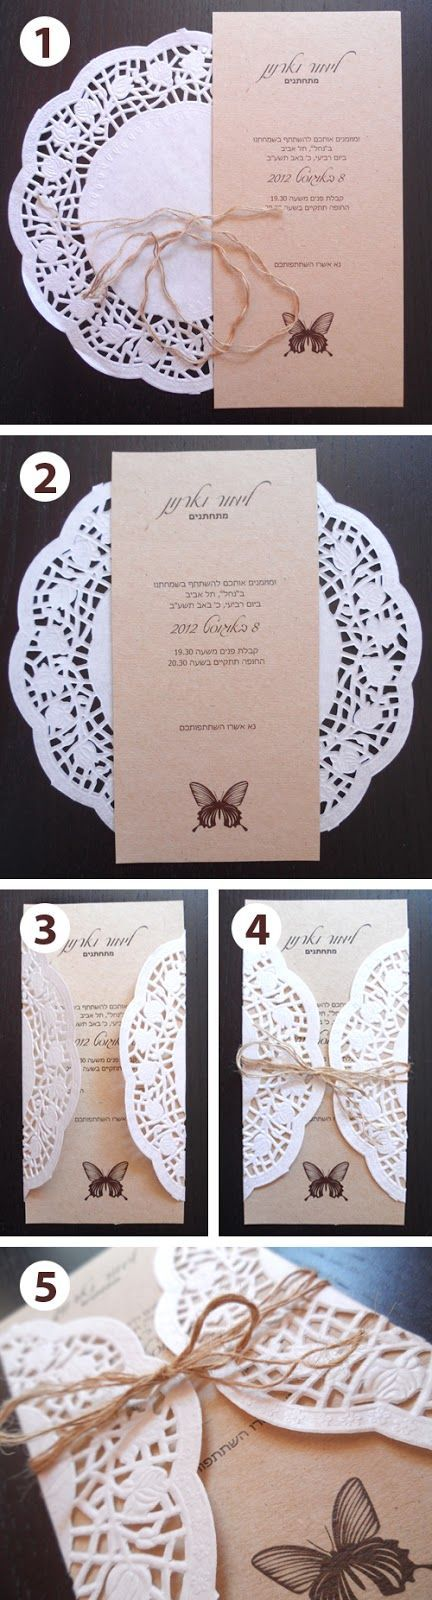 DIY Wedding Ideas For Your Wedding | http://www.weddinginclude.com/2015/05/diy-wedding-ideas-for-your-wedding/